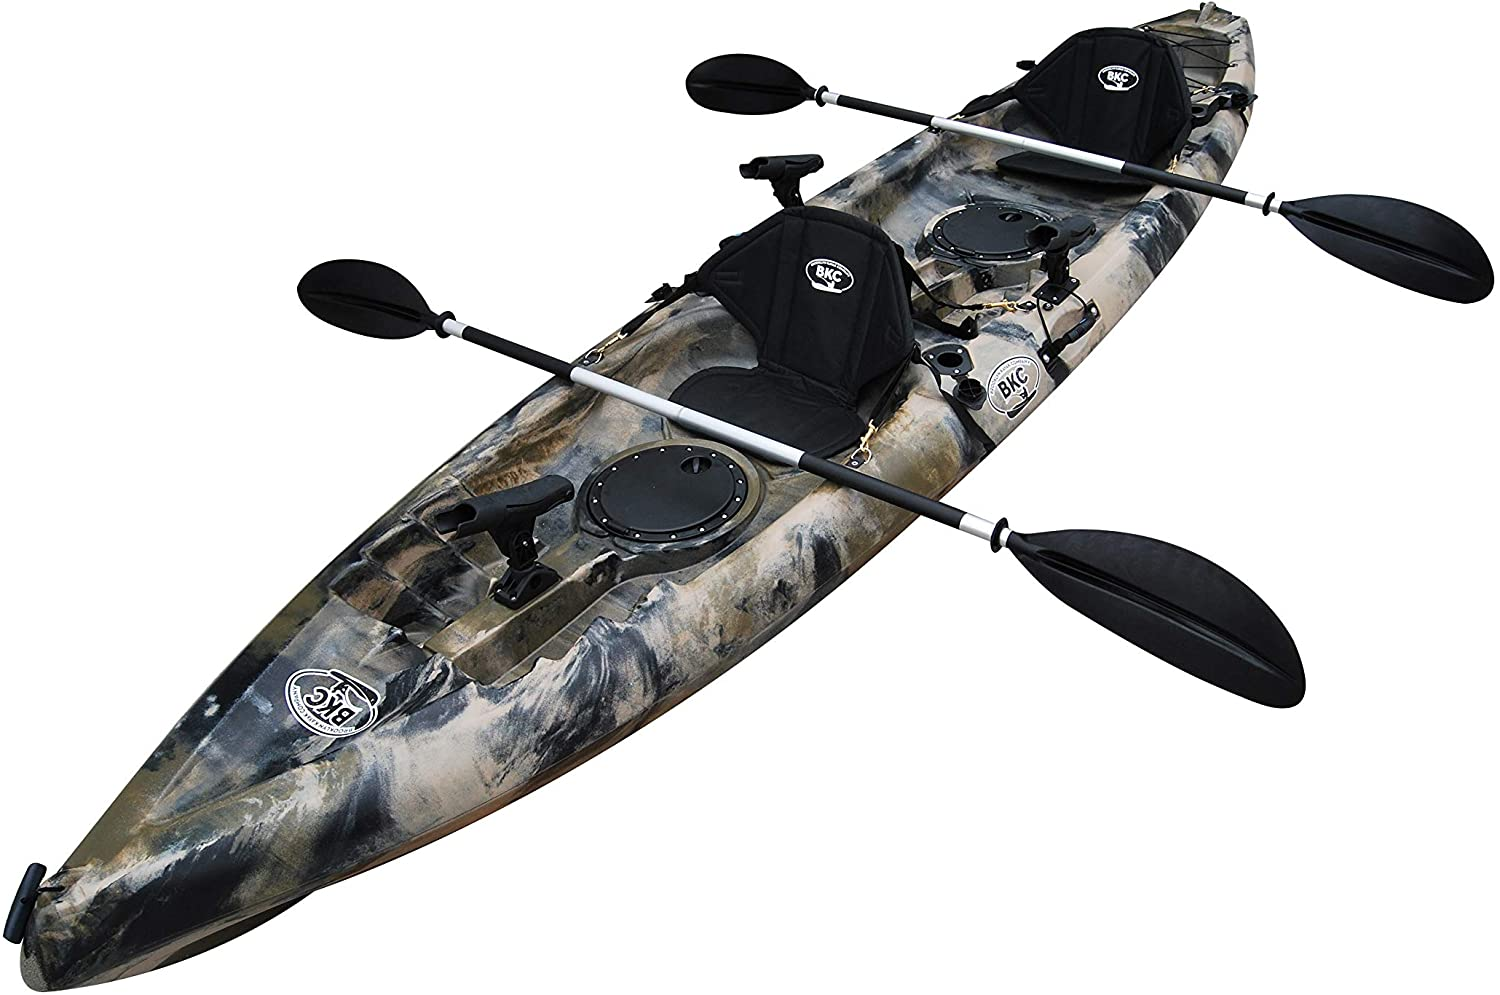 Best fishing kayak: BKC UH-TK181 12-foot 5-inch 2 Person Fishing Kayak